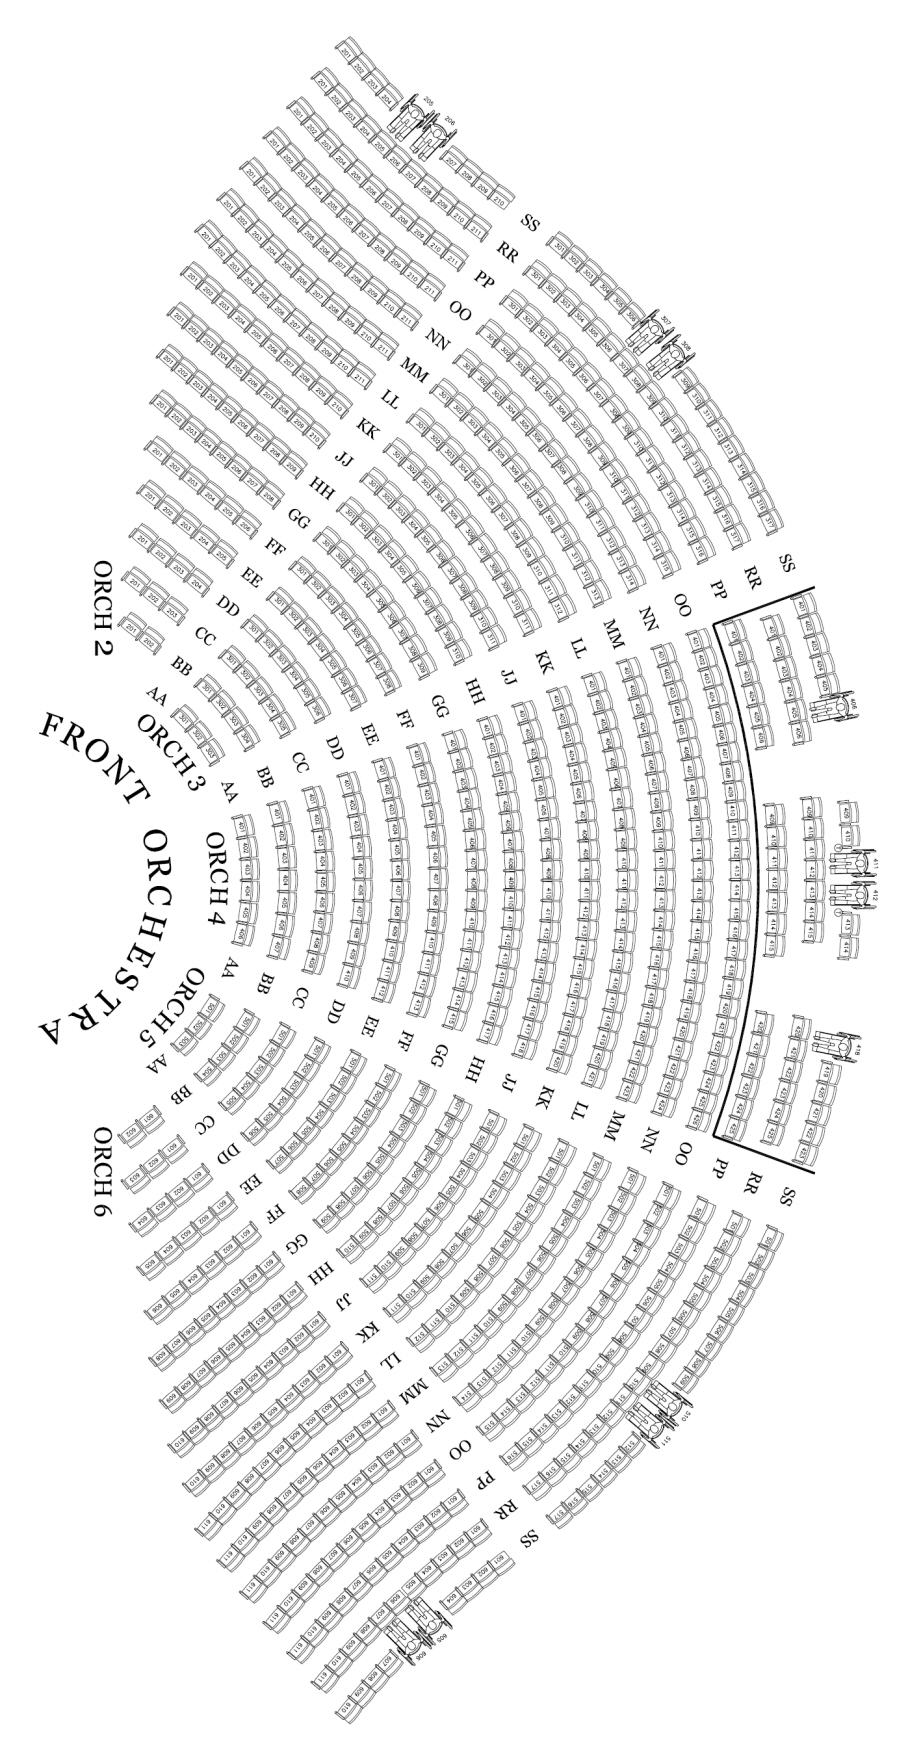 colosseum las vegas seating chart: Ticketing info for the last concerts in december